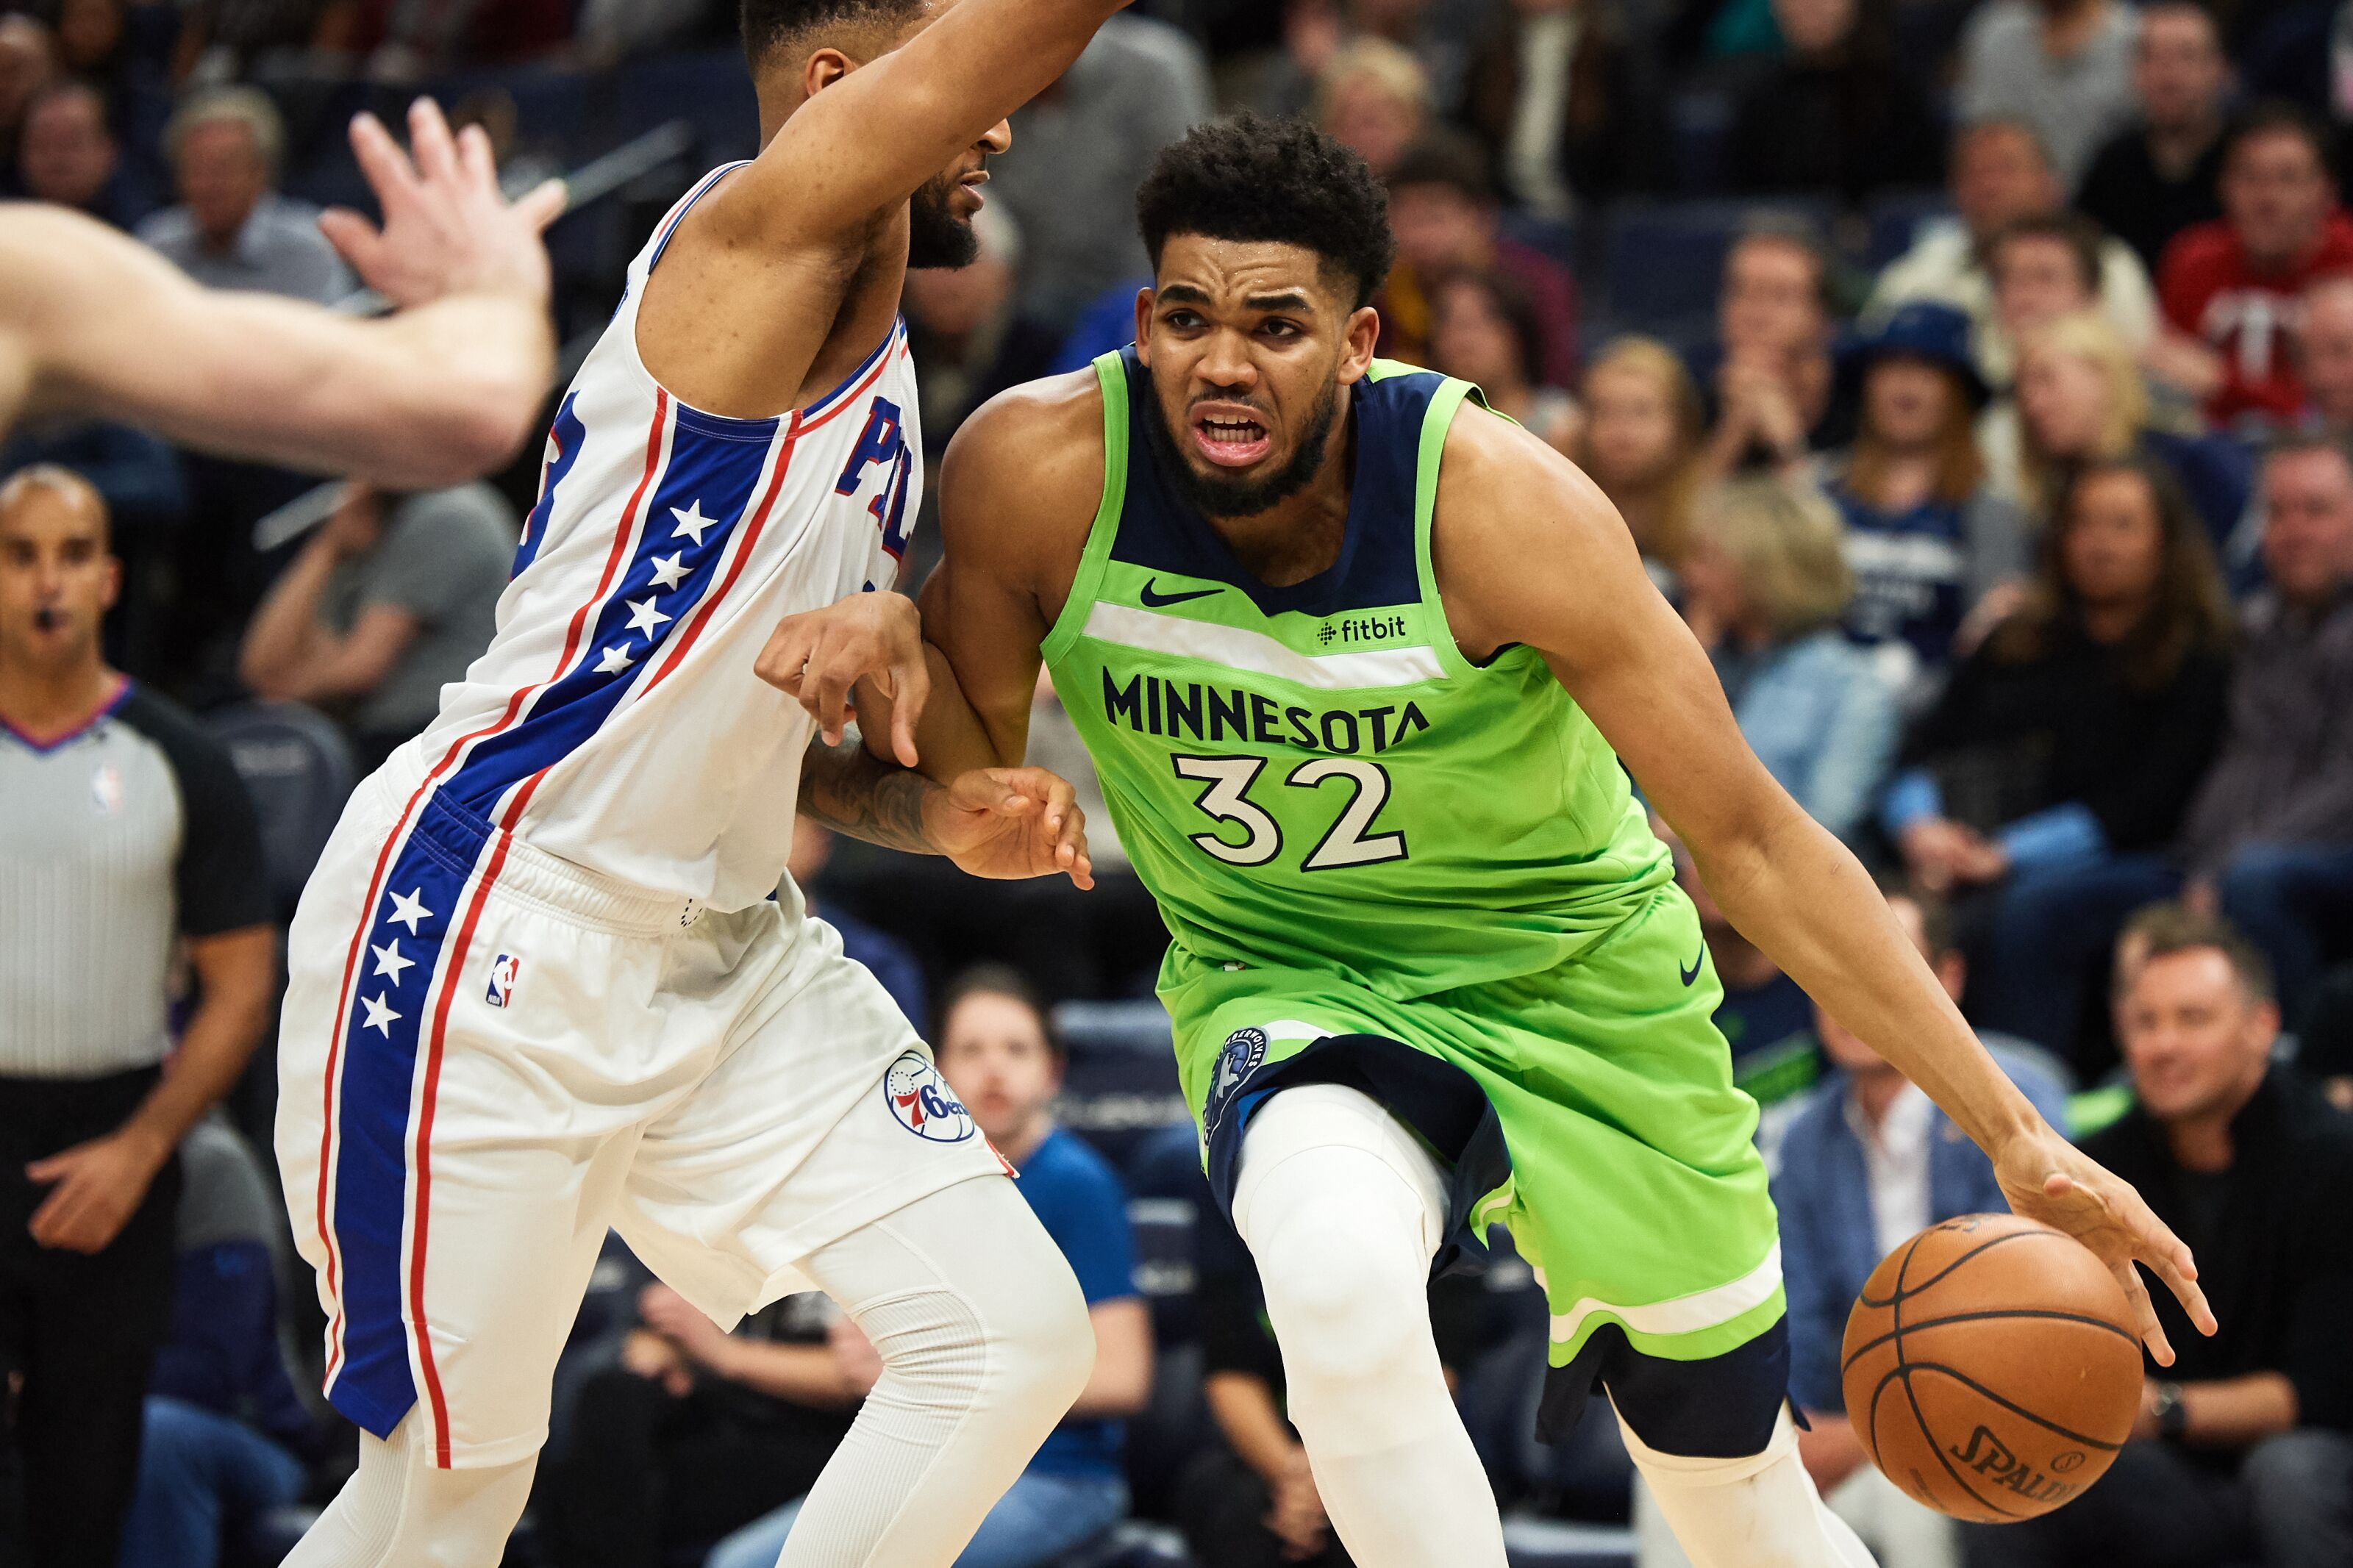 Calendario Nba 2020.Minnesota Timberwolves Bleacher Report Latest News Scores